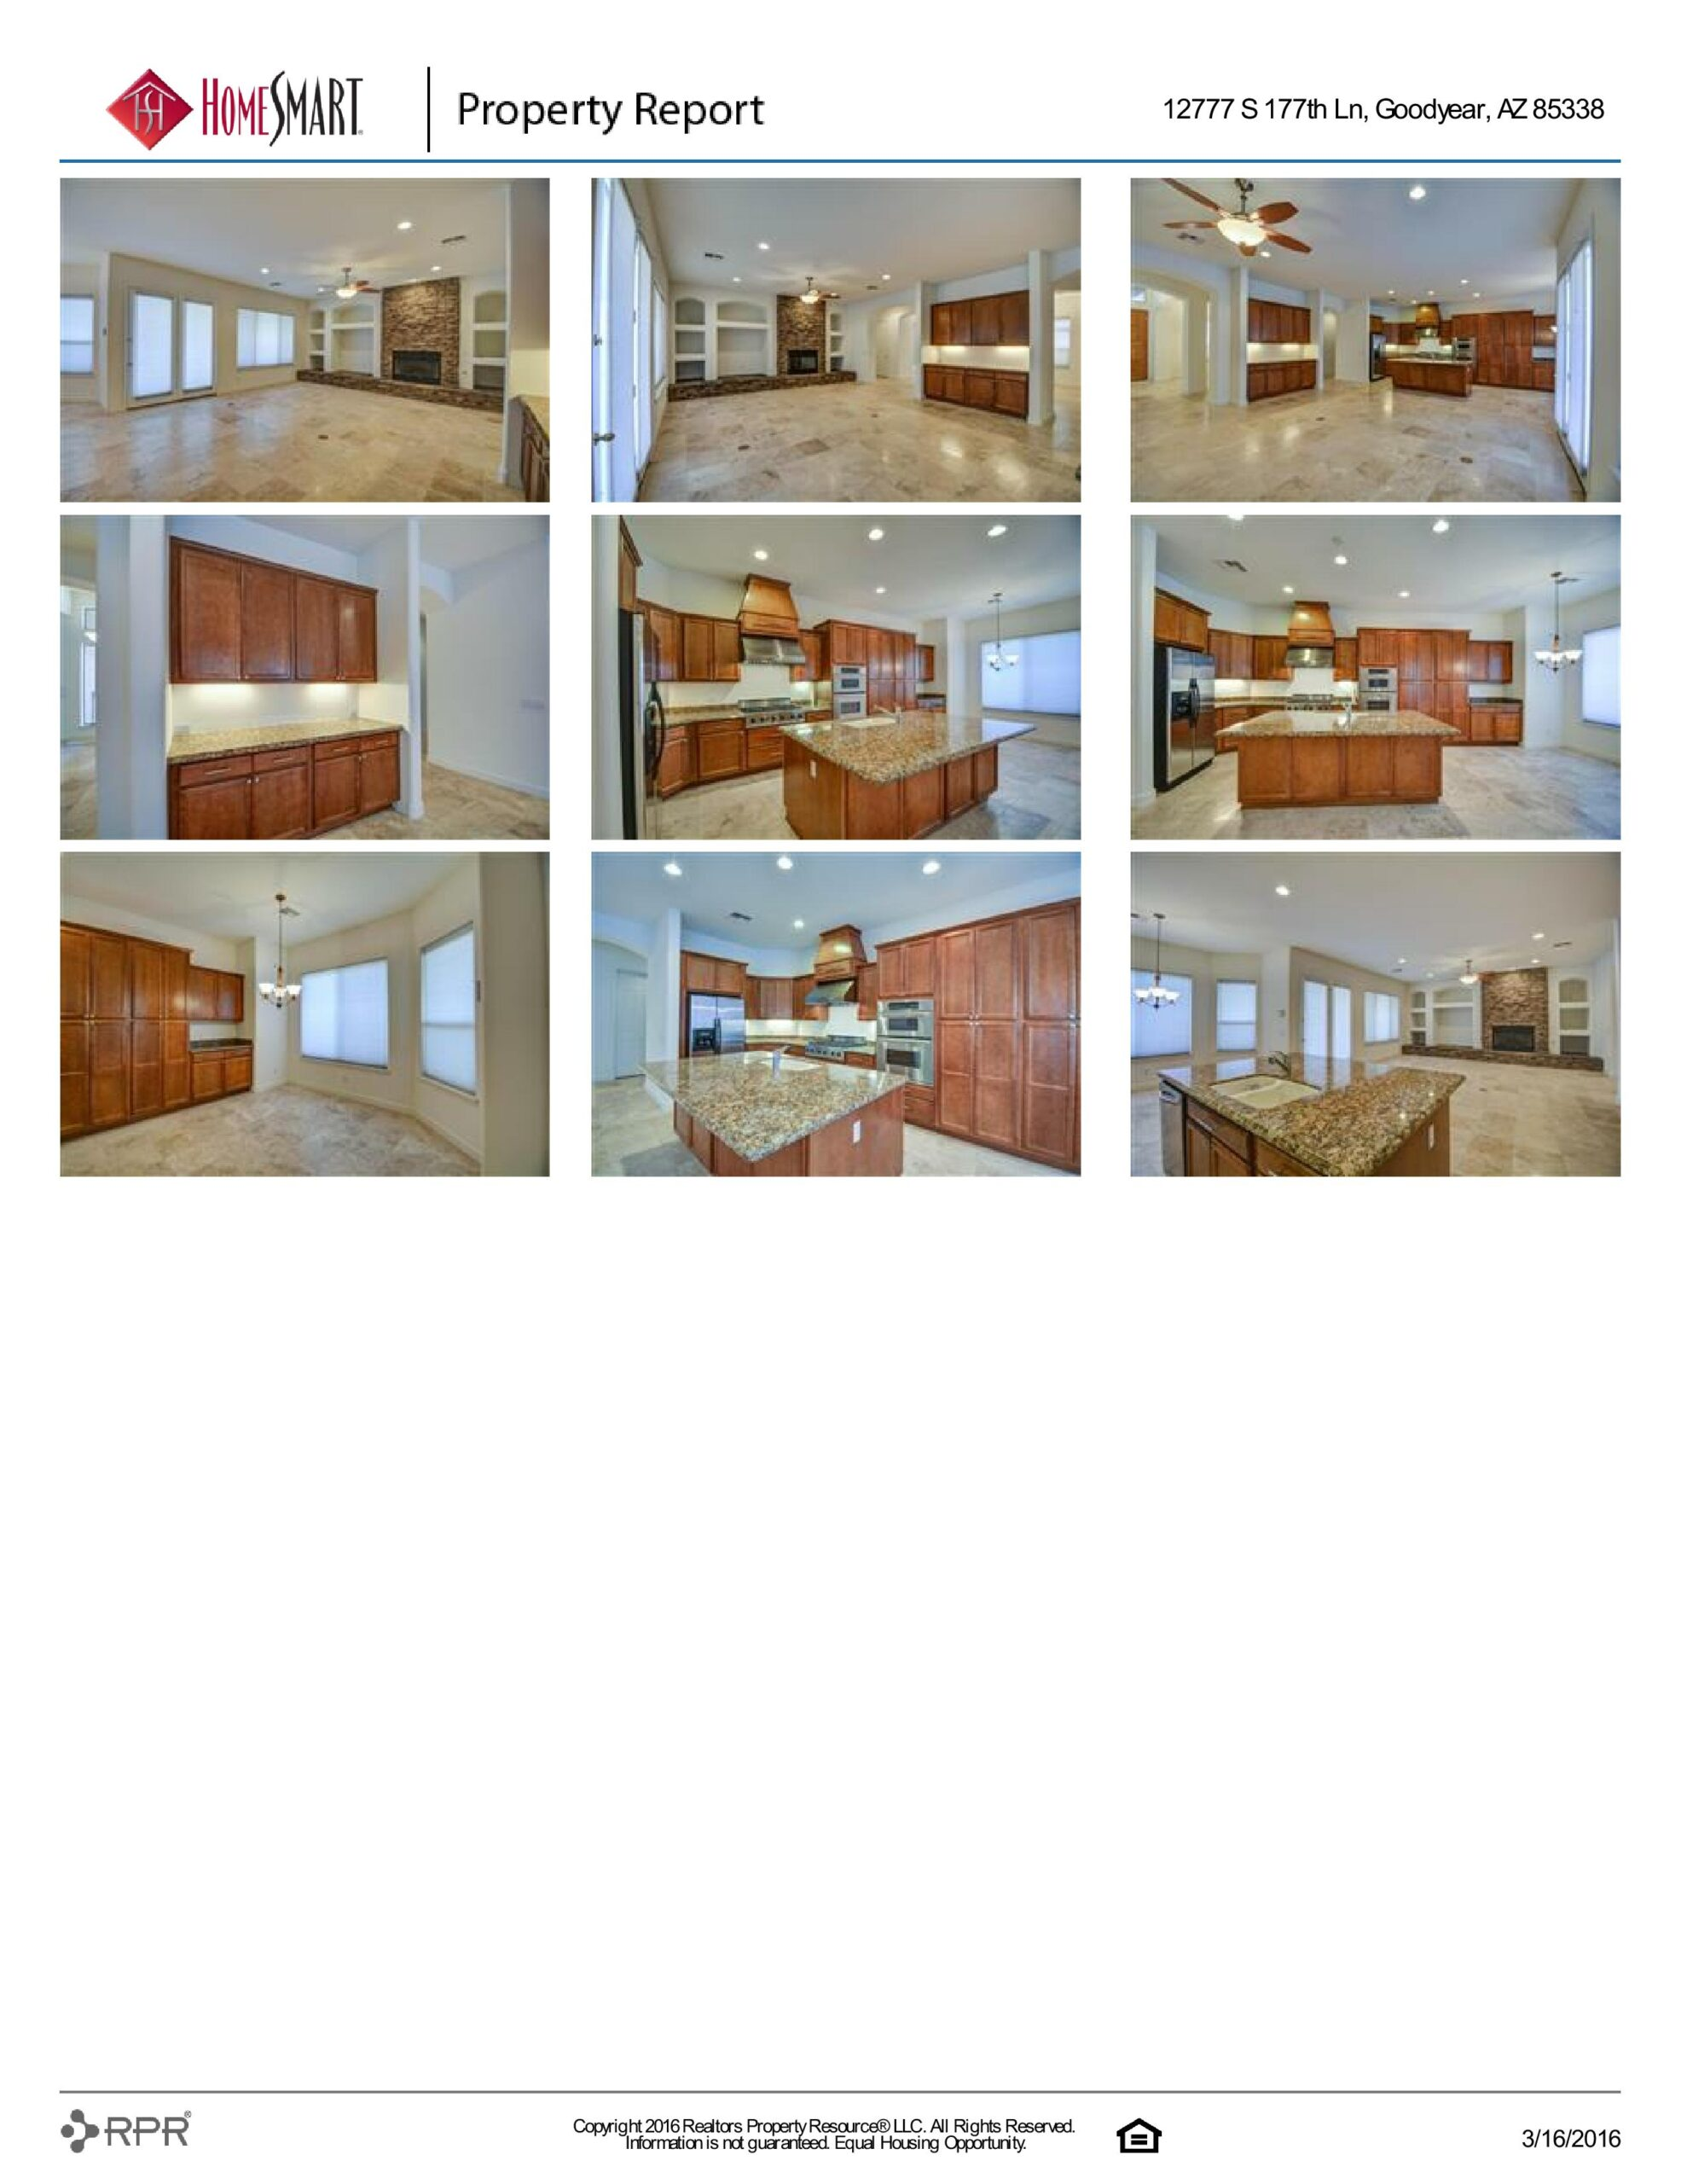 12777 S 177TH LANE PROPERTY REPORT-page-007